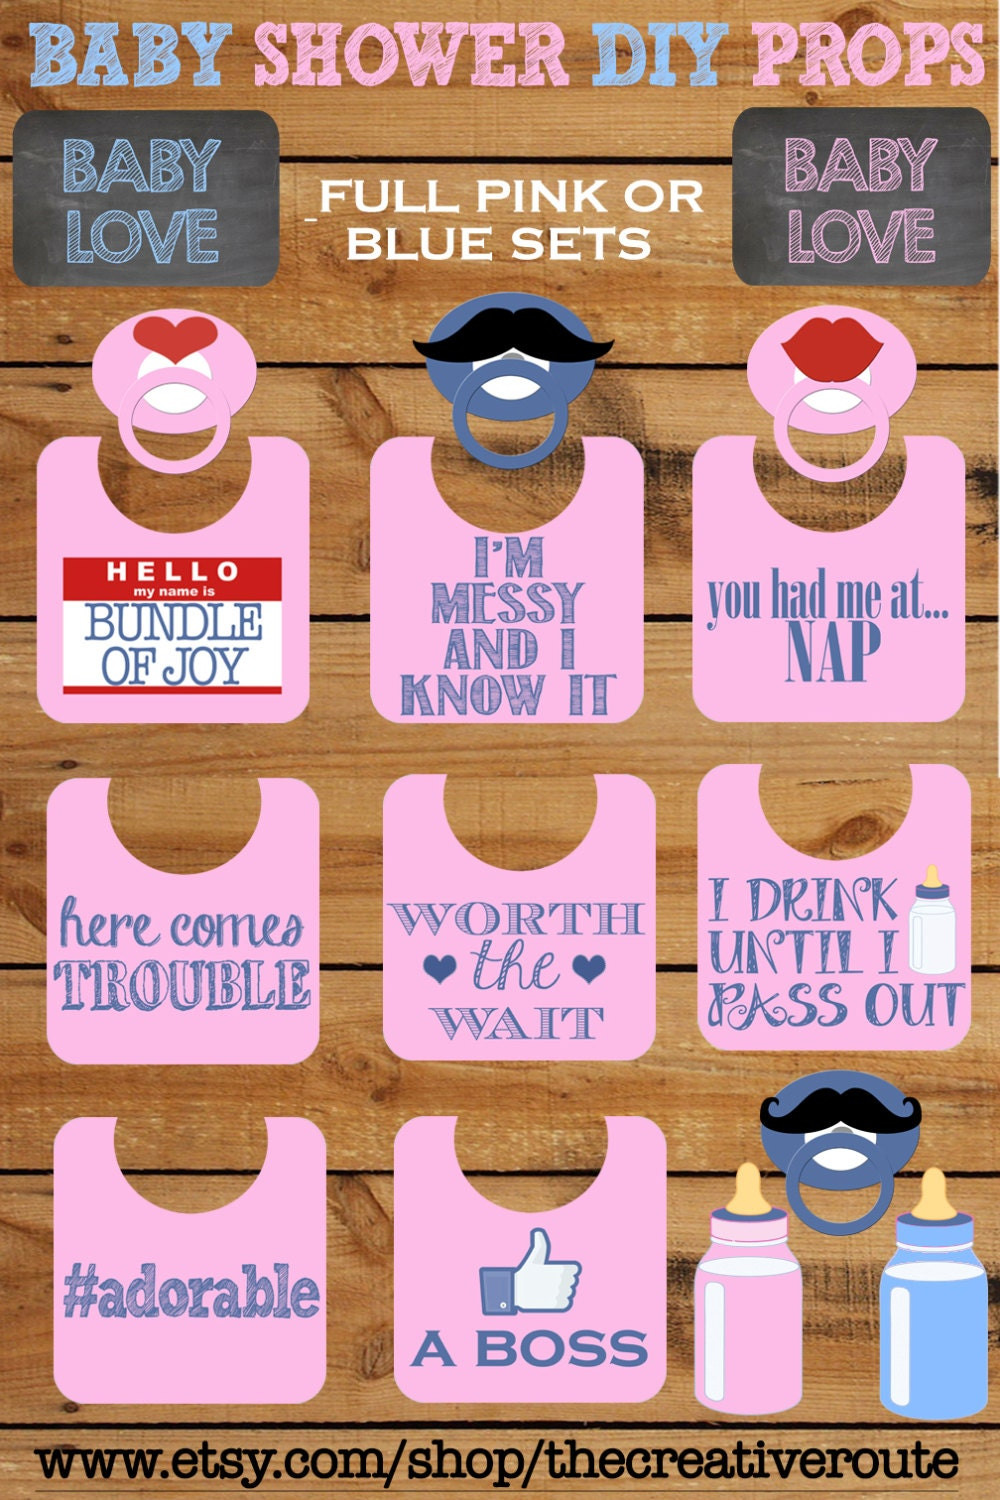 Baby shower photo booth props printable large 11 page pdf diy zoom solutioingenieria Images